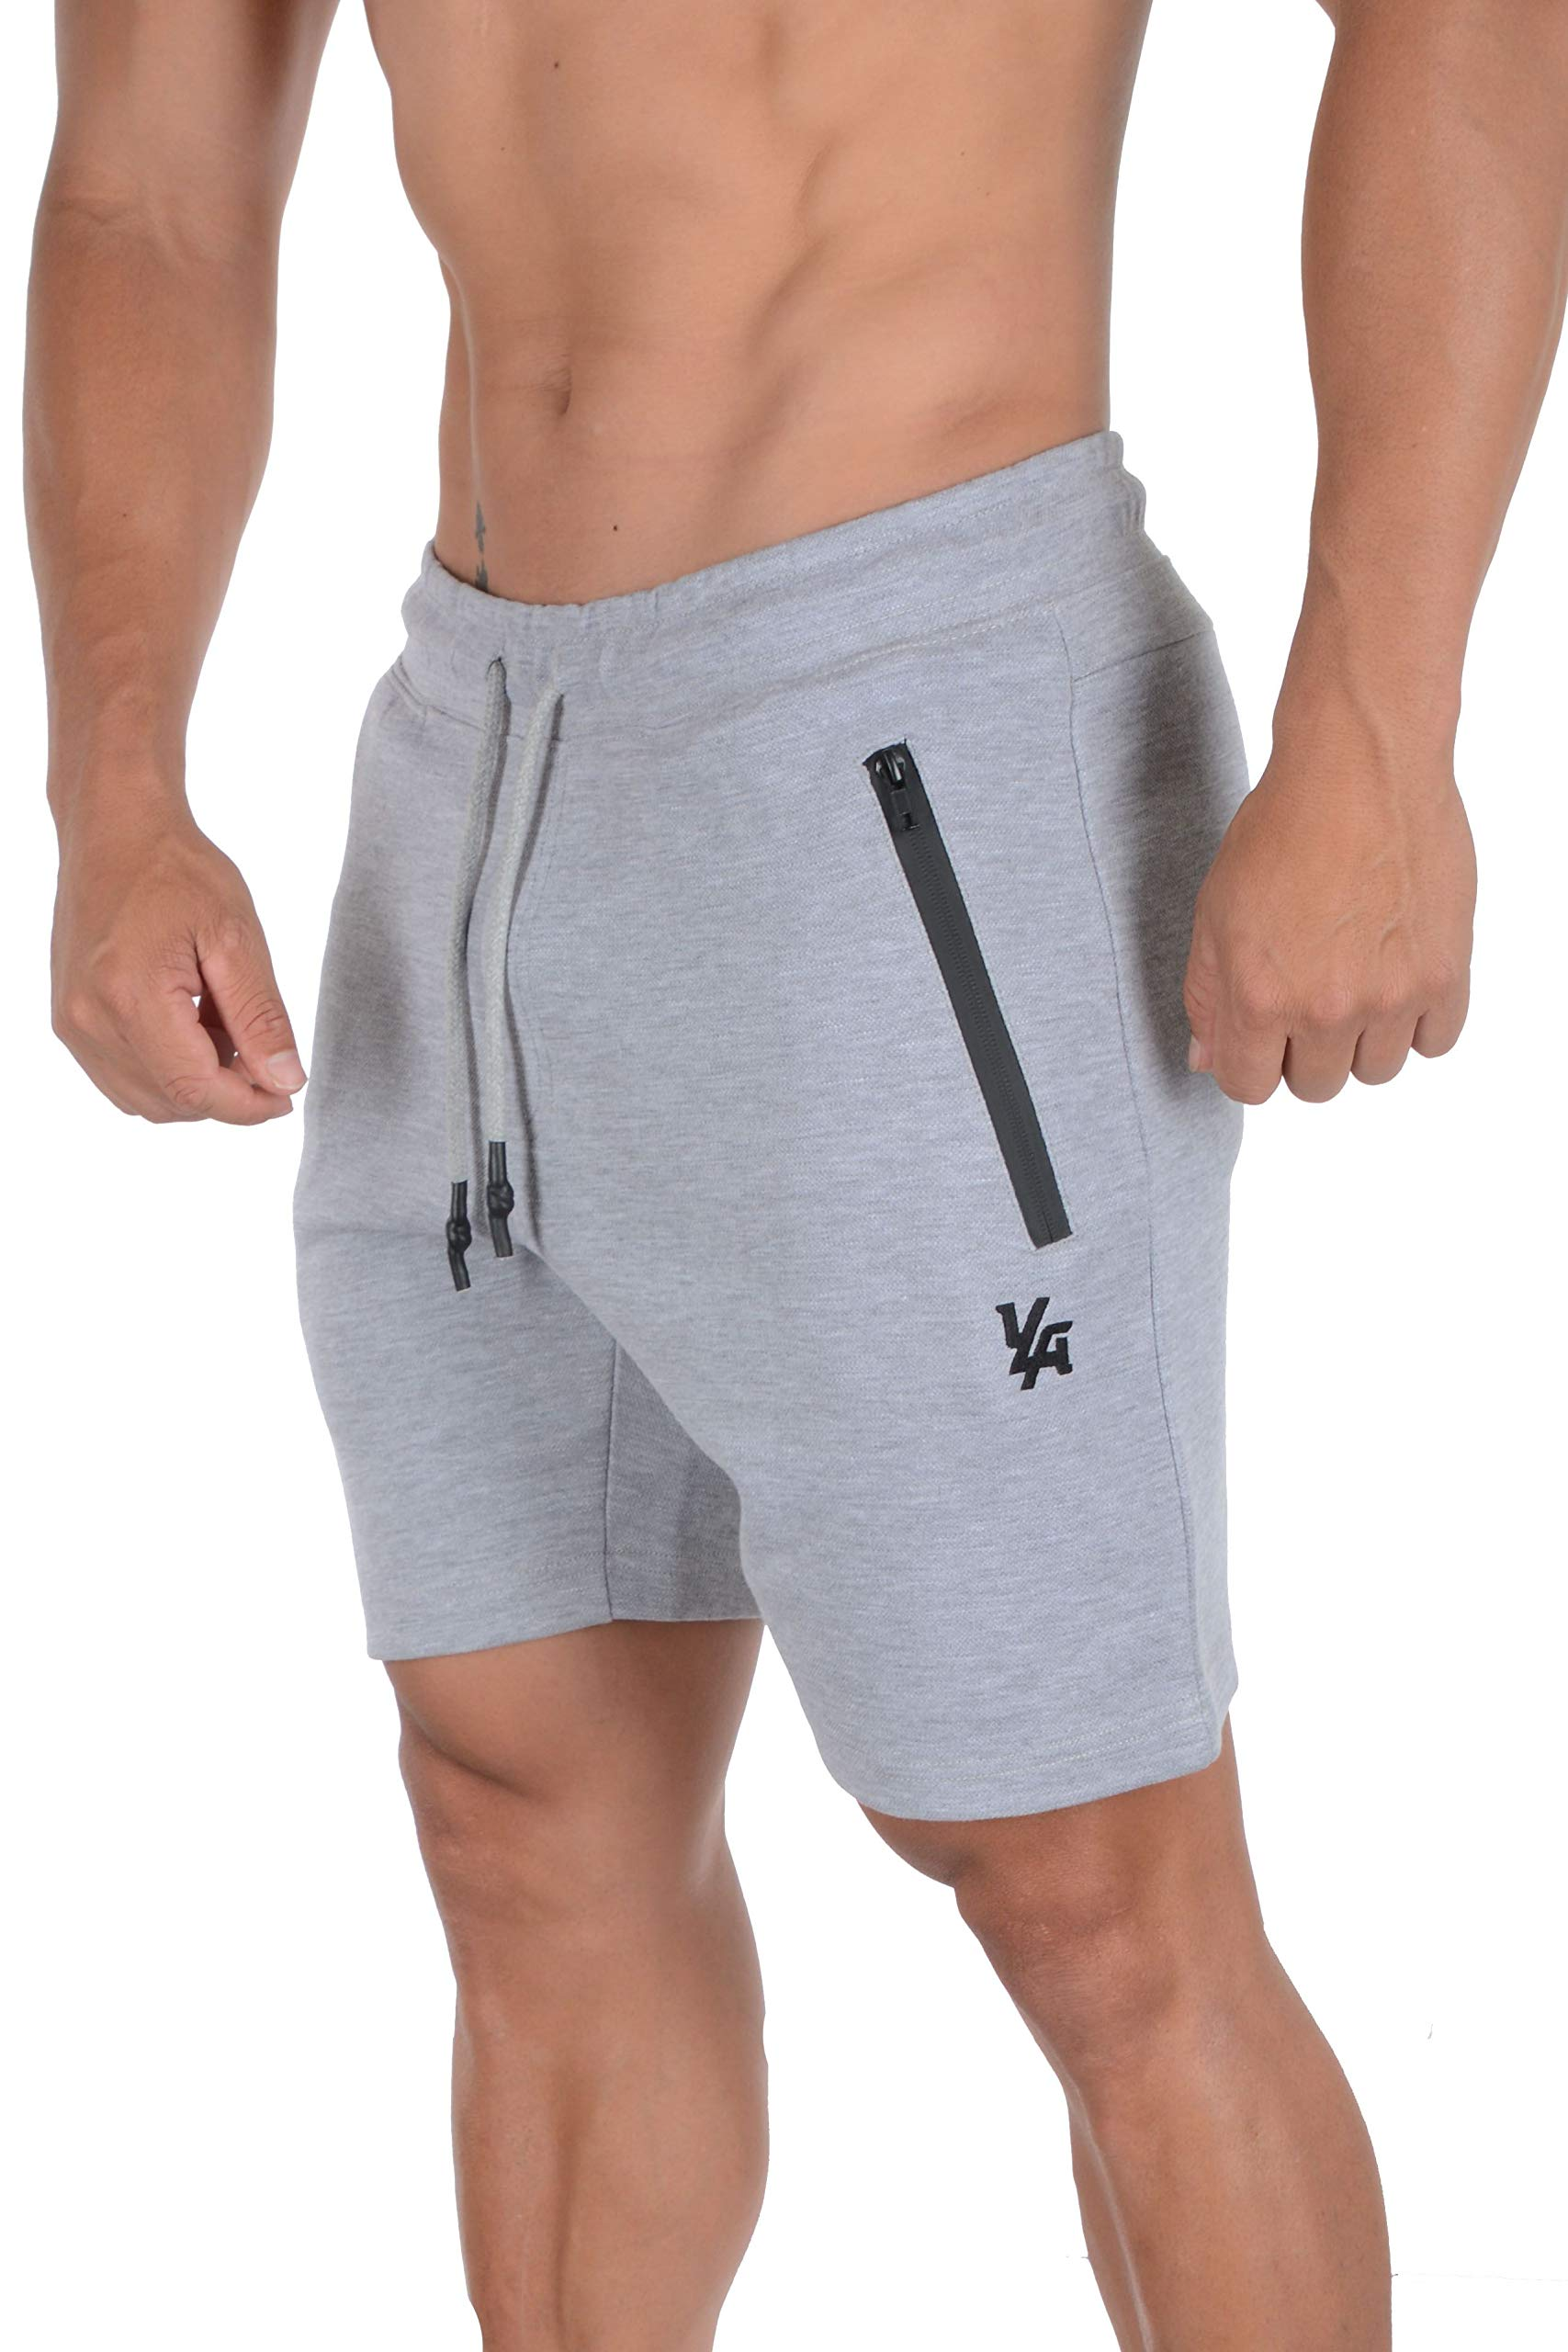 YoungLA Mens Shorts with Zipper Pockets | Casual Gym Training 108 | Grey XLarge by YoungLA